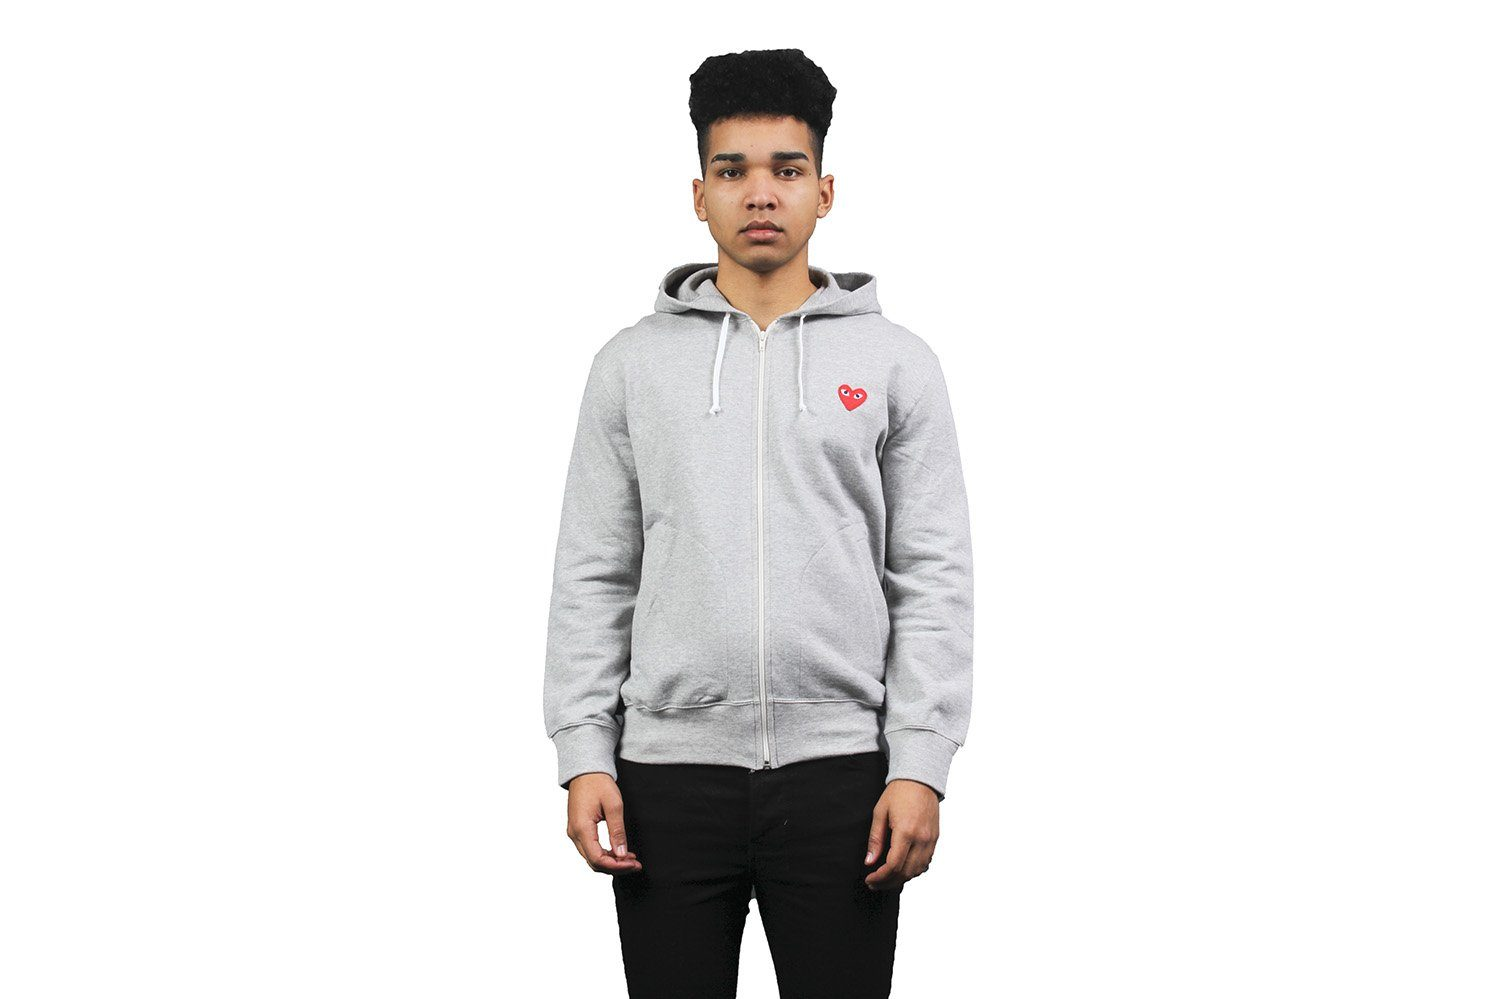 RED HEART GREY ZIP HOODIE - AZT250 MENS SOFTGOODS COMME DES GARCONS GREY S